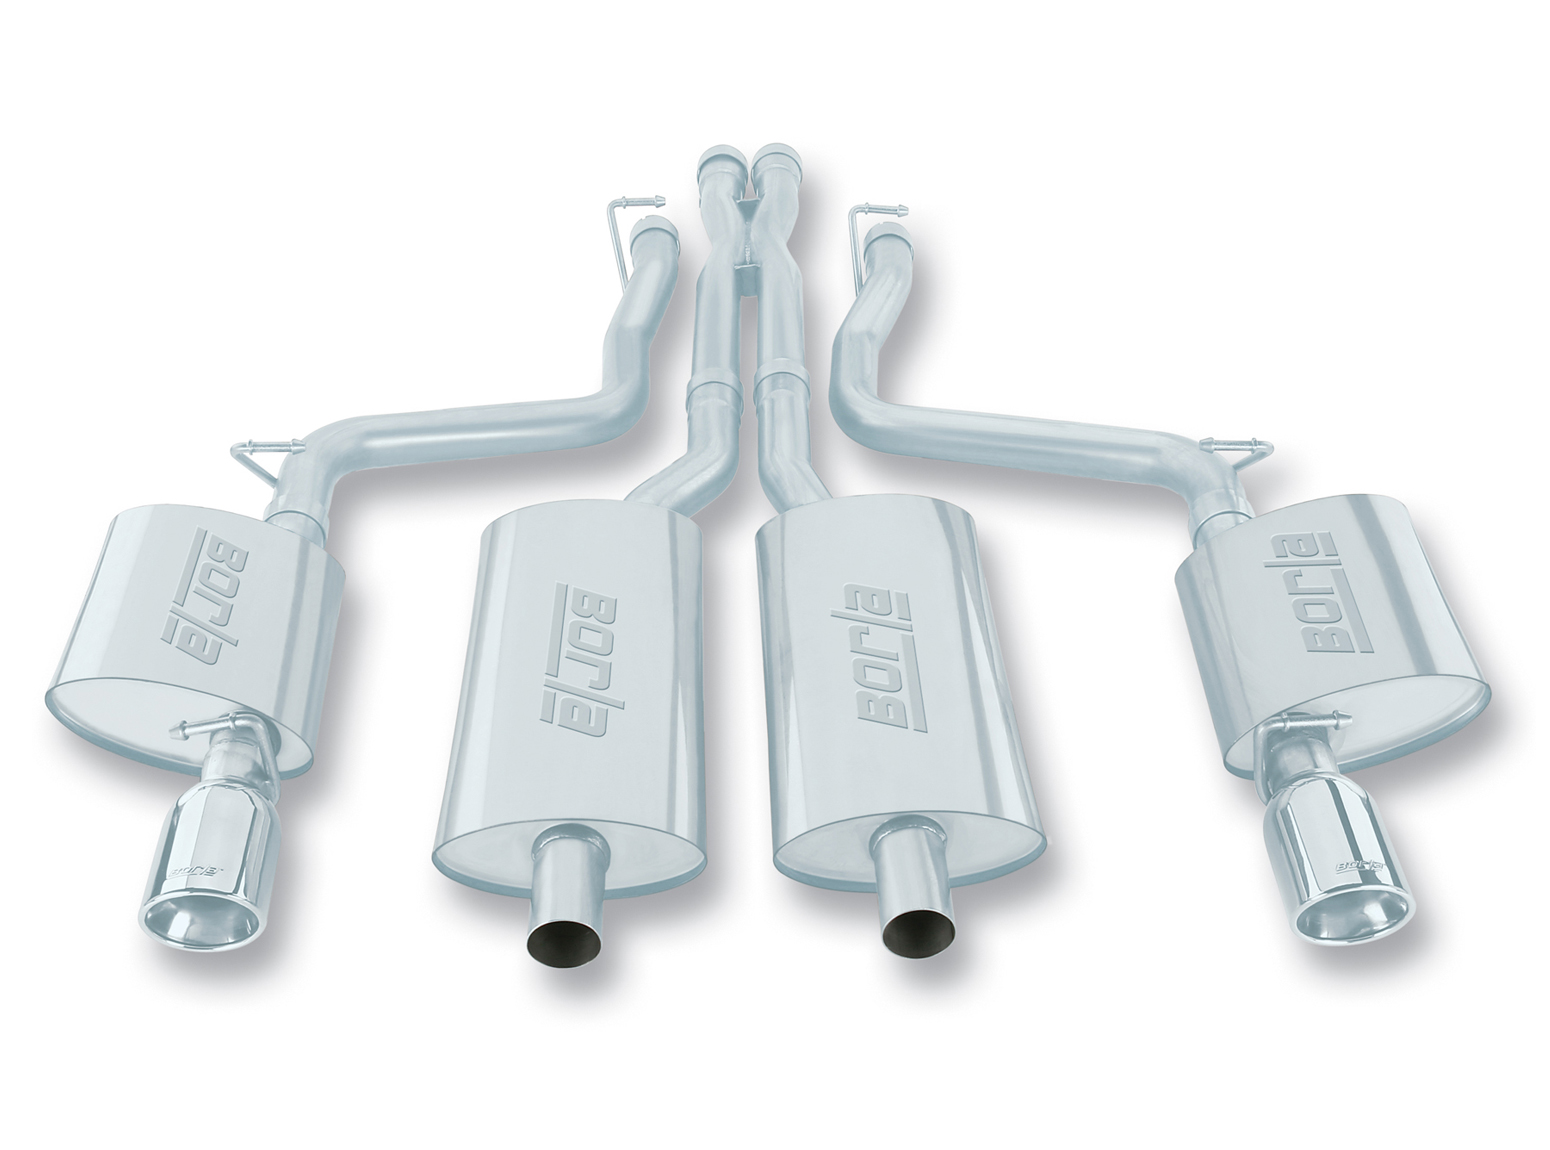 "Dodge Magnum SRT-8 6.1l V8 2005-2008 Borla 2.5"" Cat-Back Exhaust System - Single Round Rolled Angle-Cut Lined"